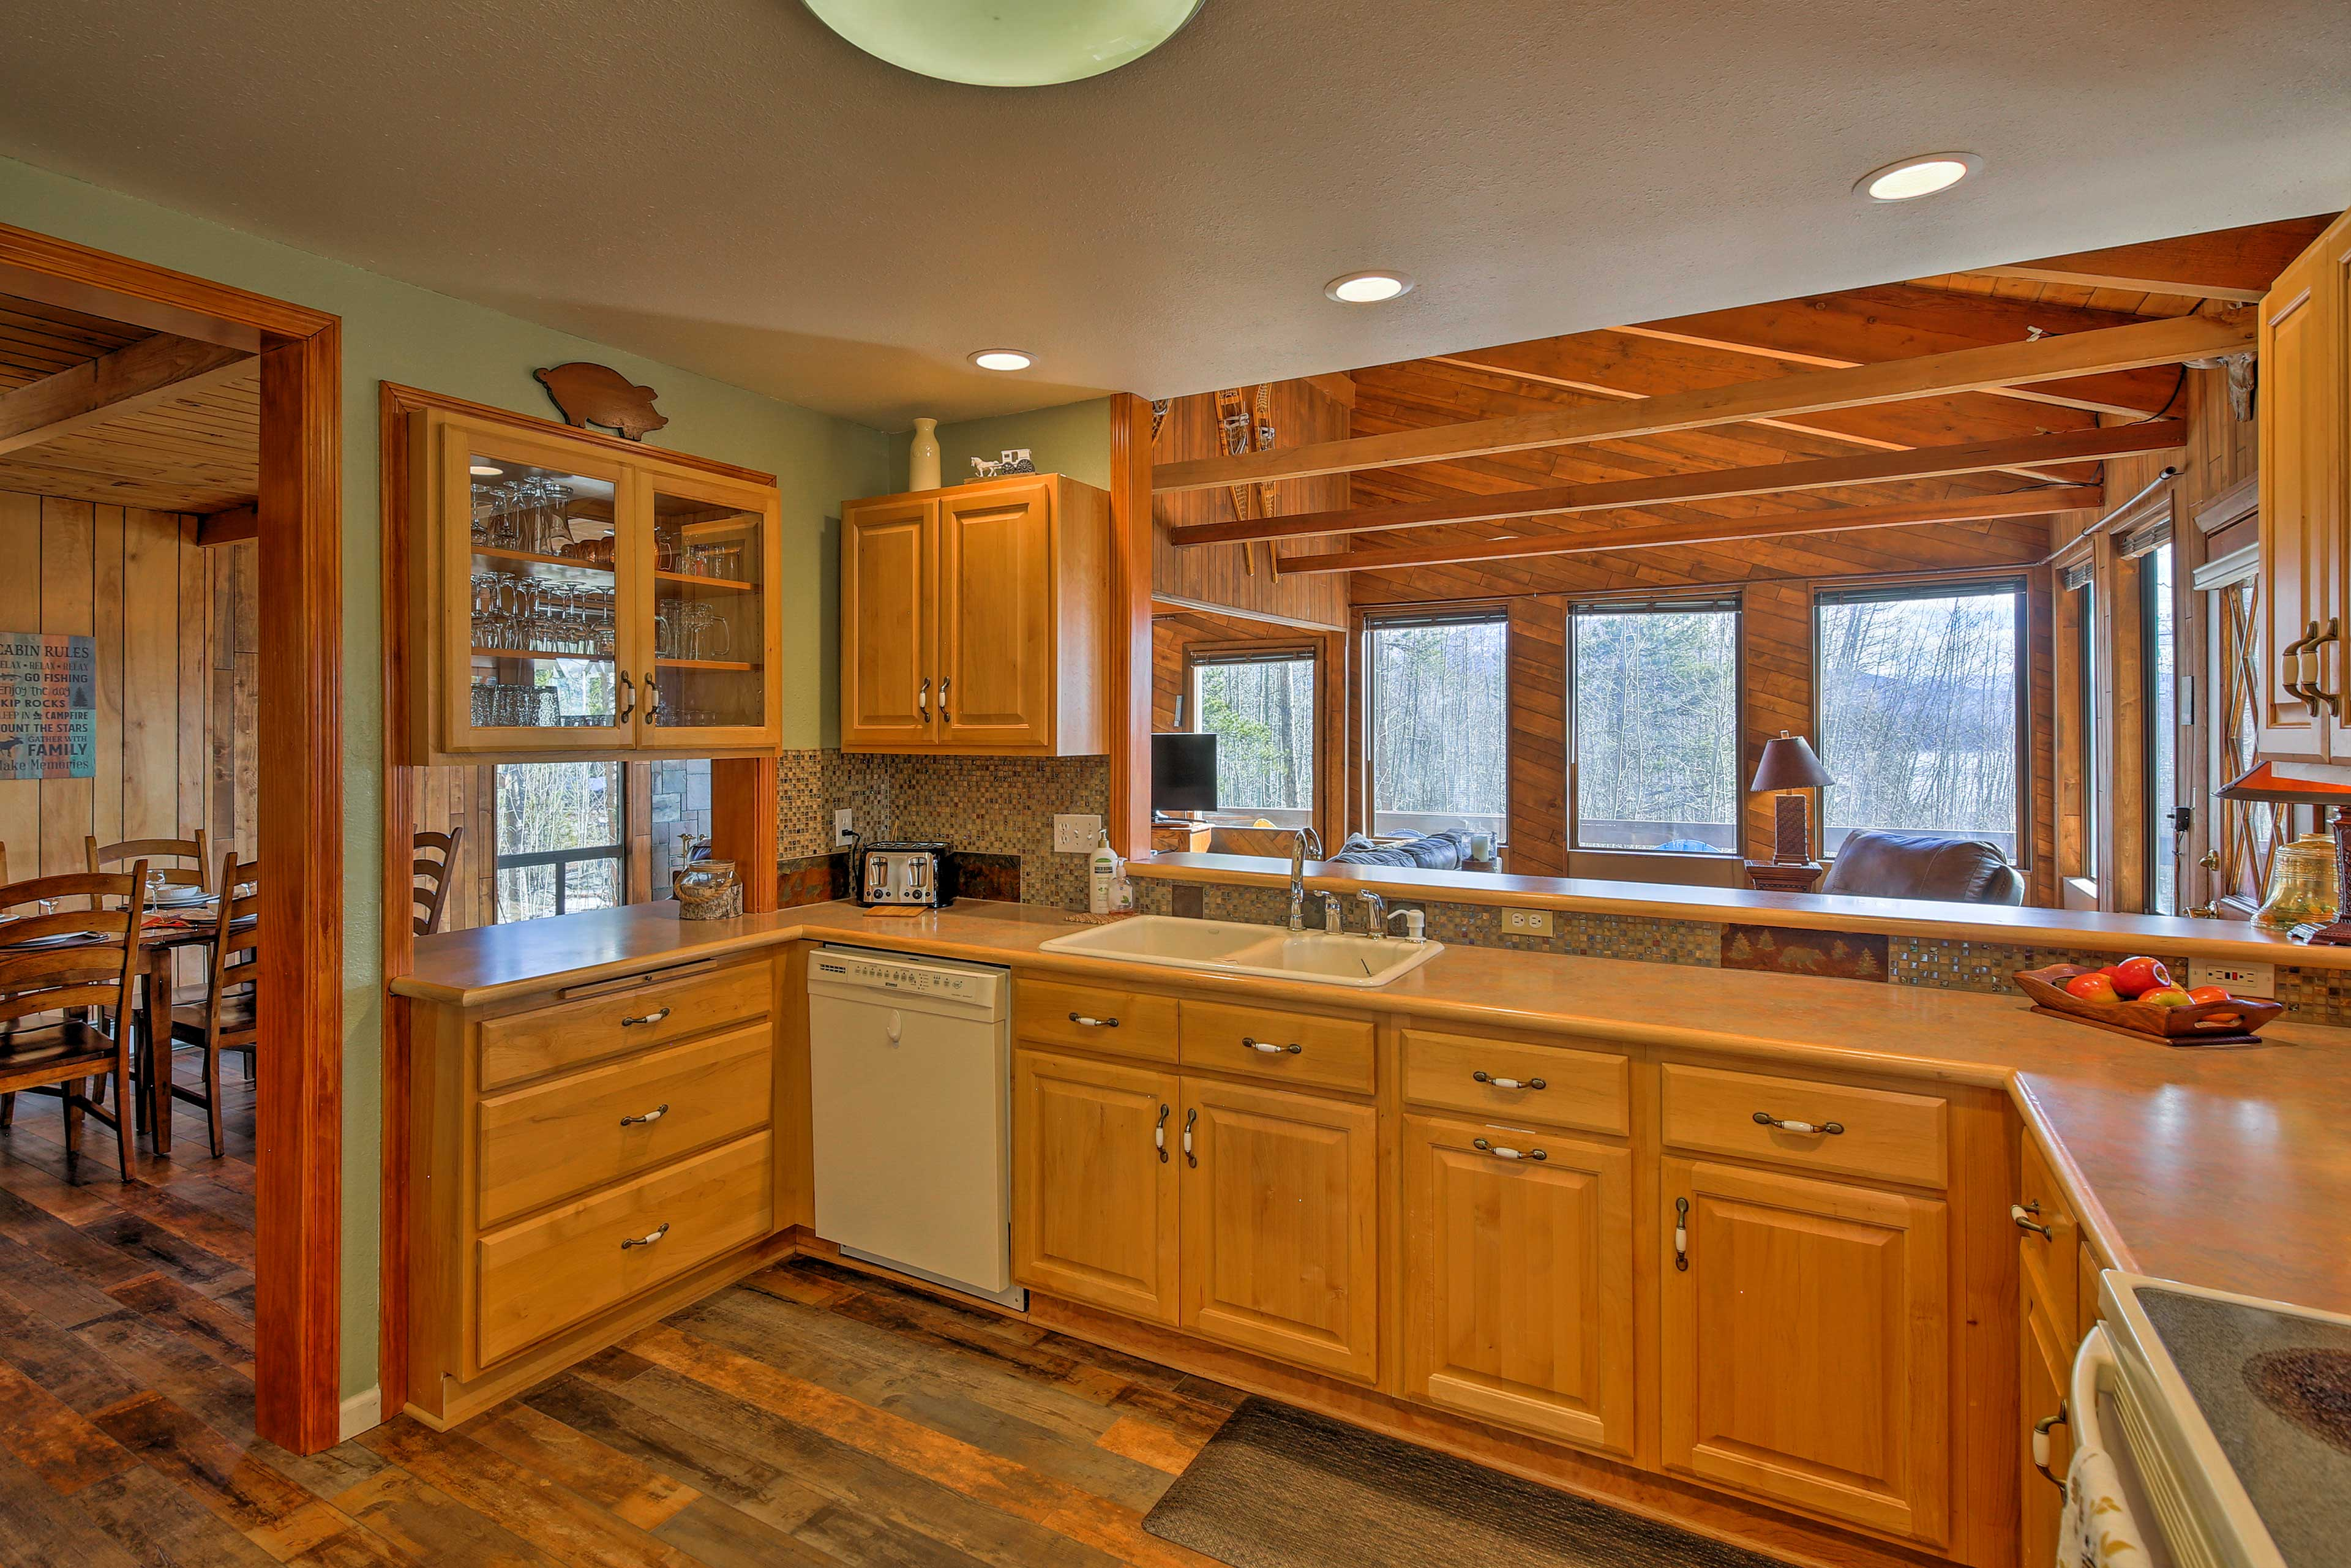 This kitchen has all of the culinary essentials of home.